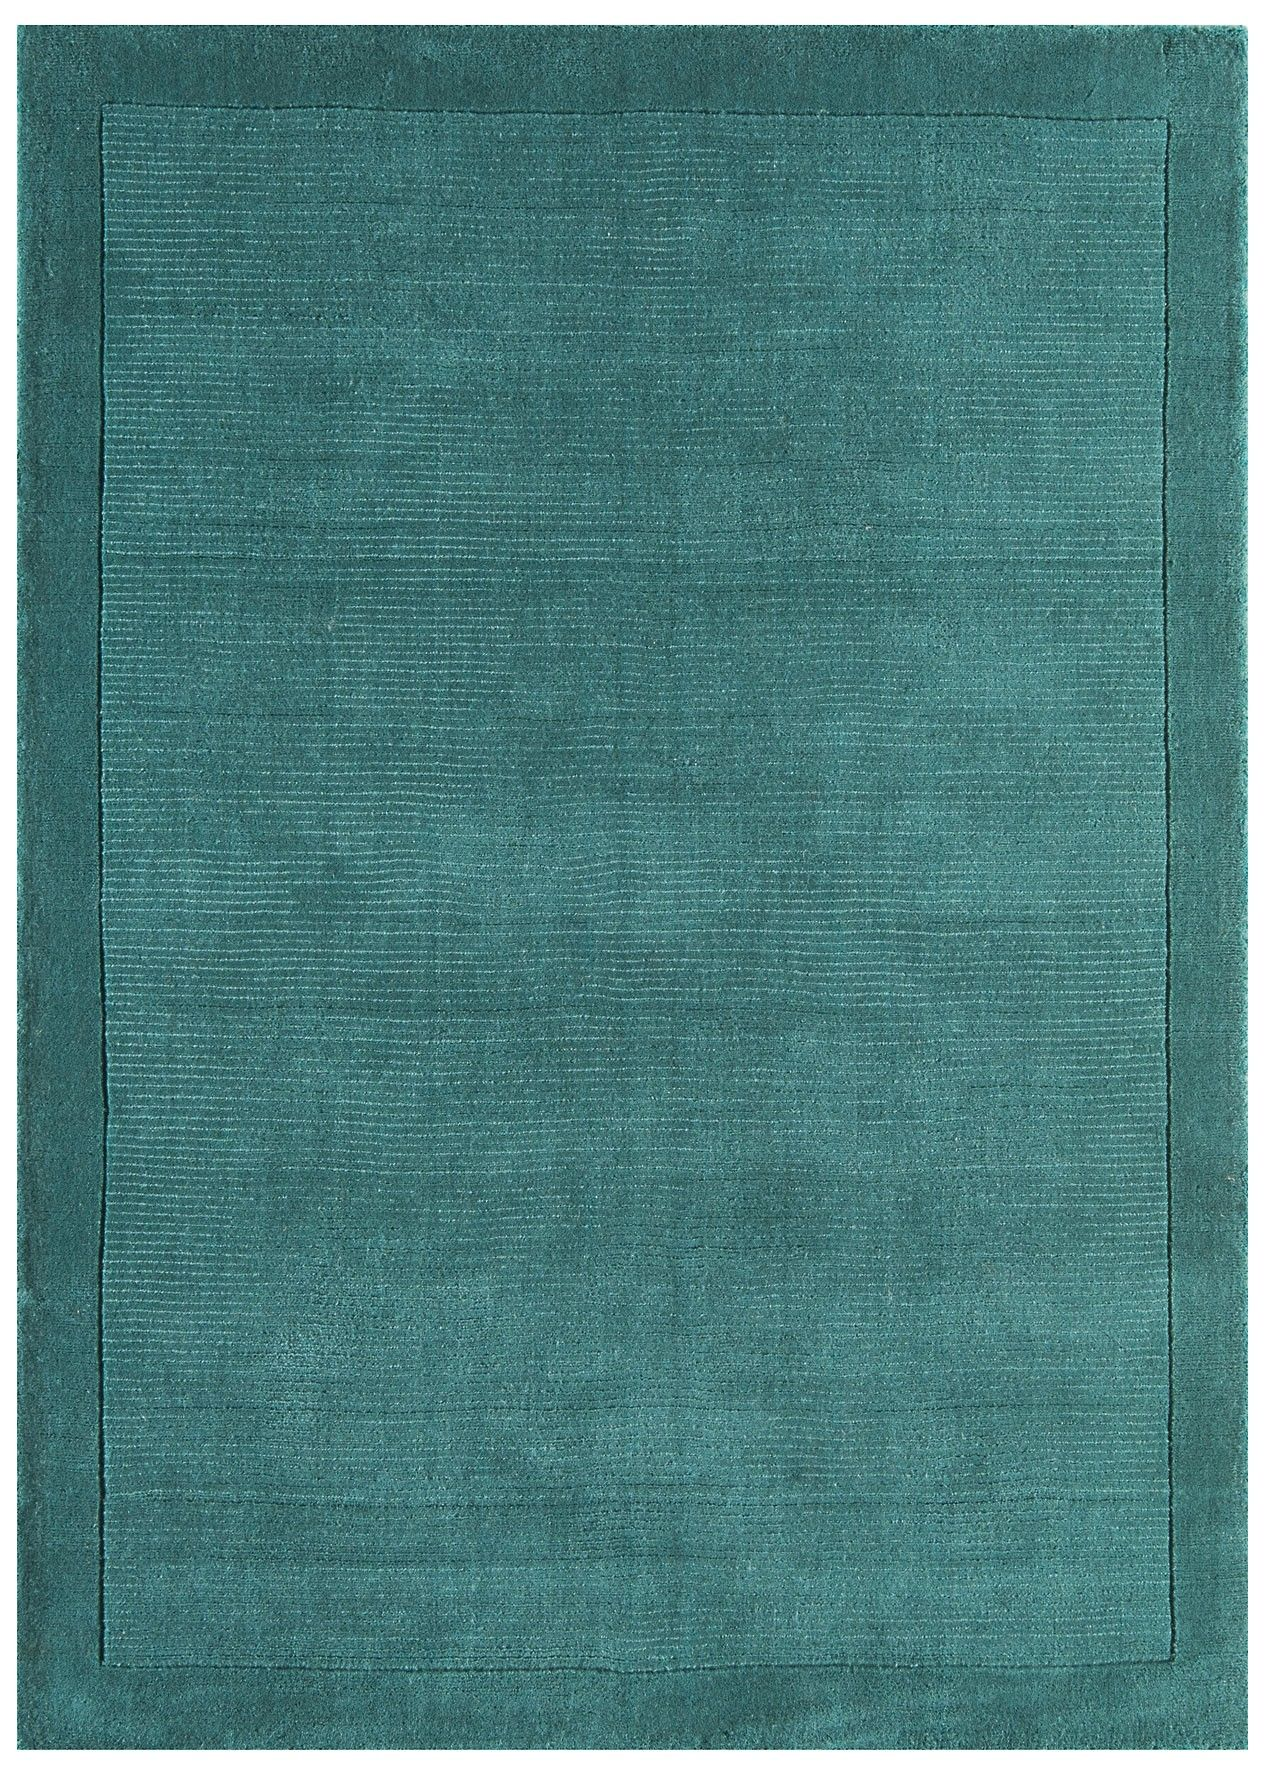 Best York Handloom Runner Teal Rugs On Carpet Plain Rugs 640 x 480